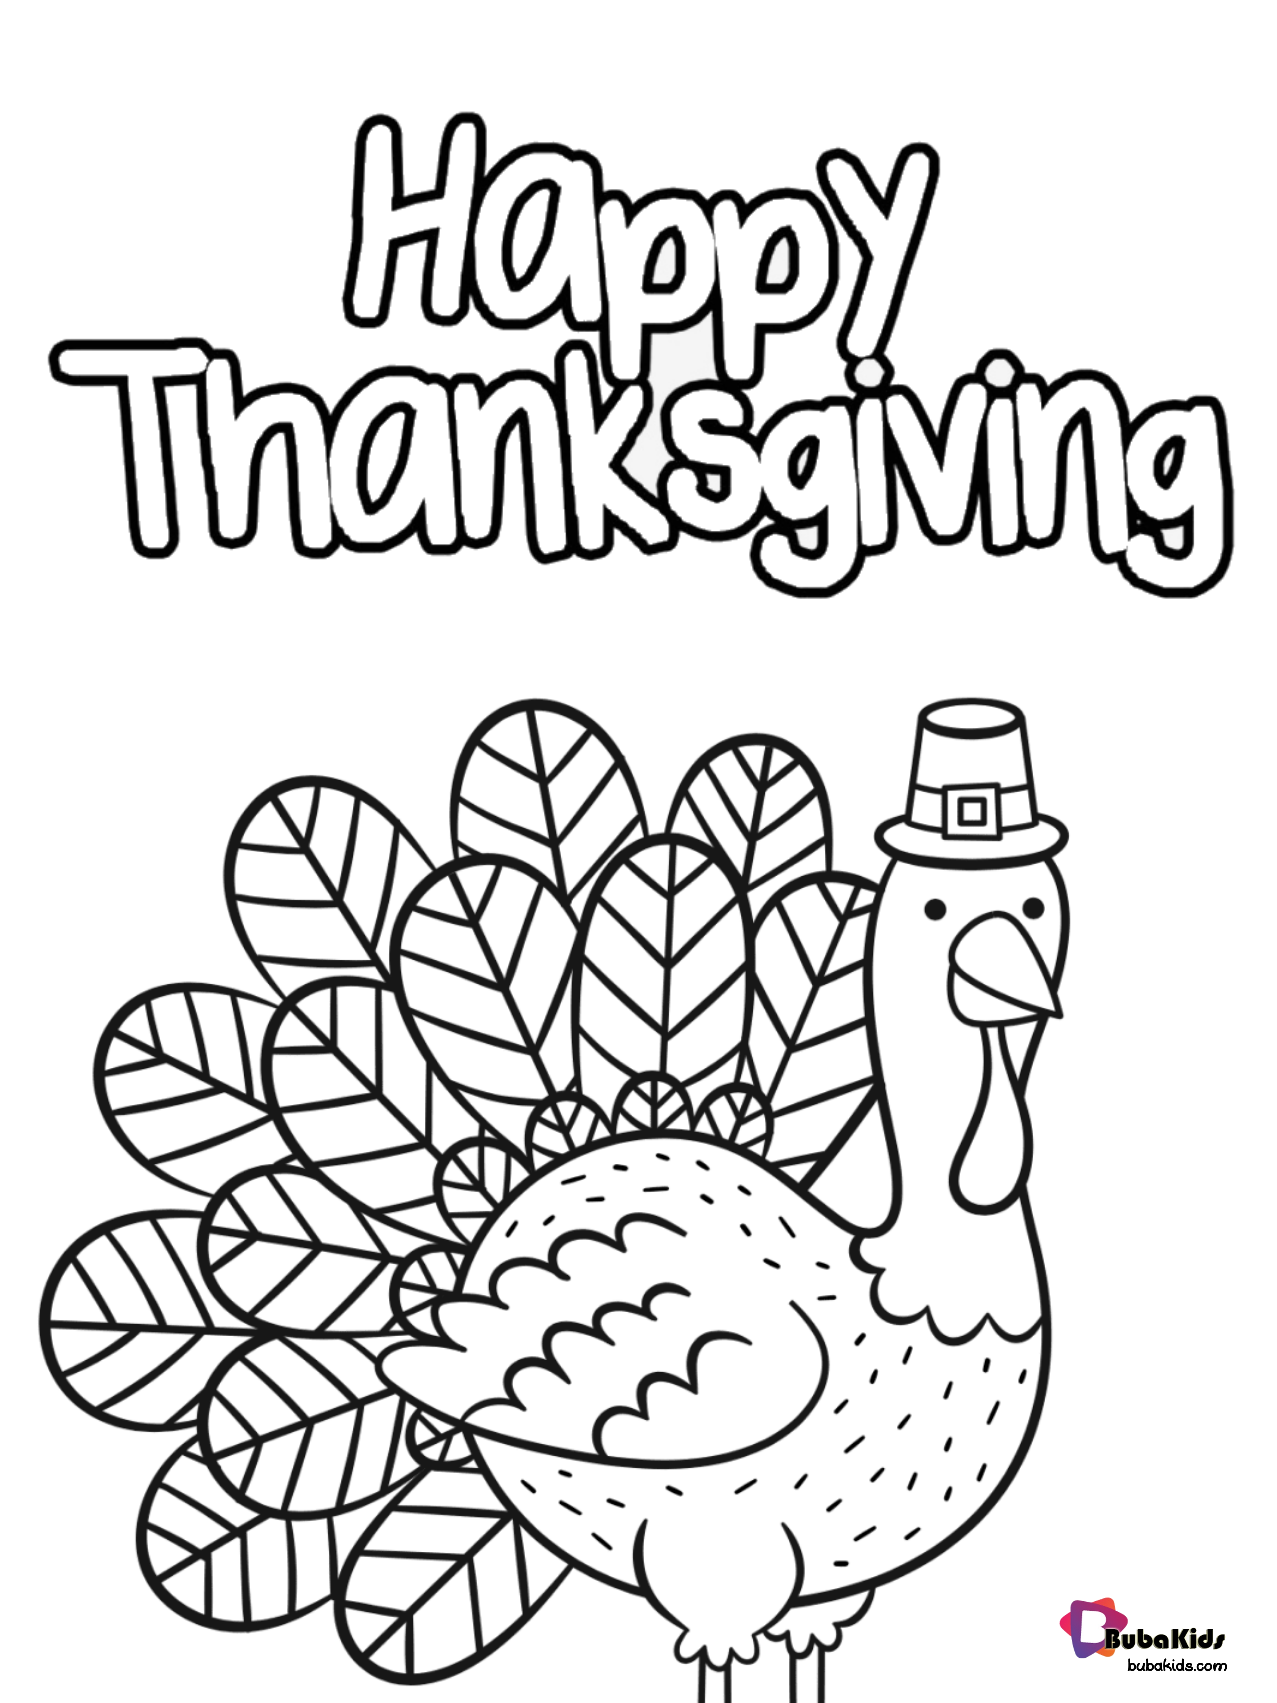 Free And Printable Happy Thanksgiving Coloring Page Cute Turkey Gobble Til You Wobble Pr Thanksgiving Coloring Pages Coloring Pages Cartoon Coloring Pages